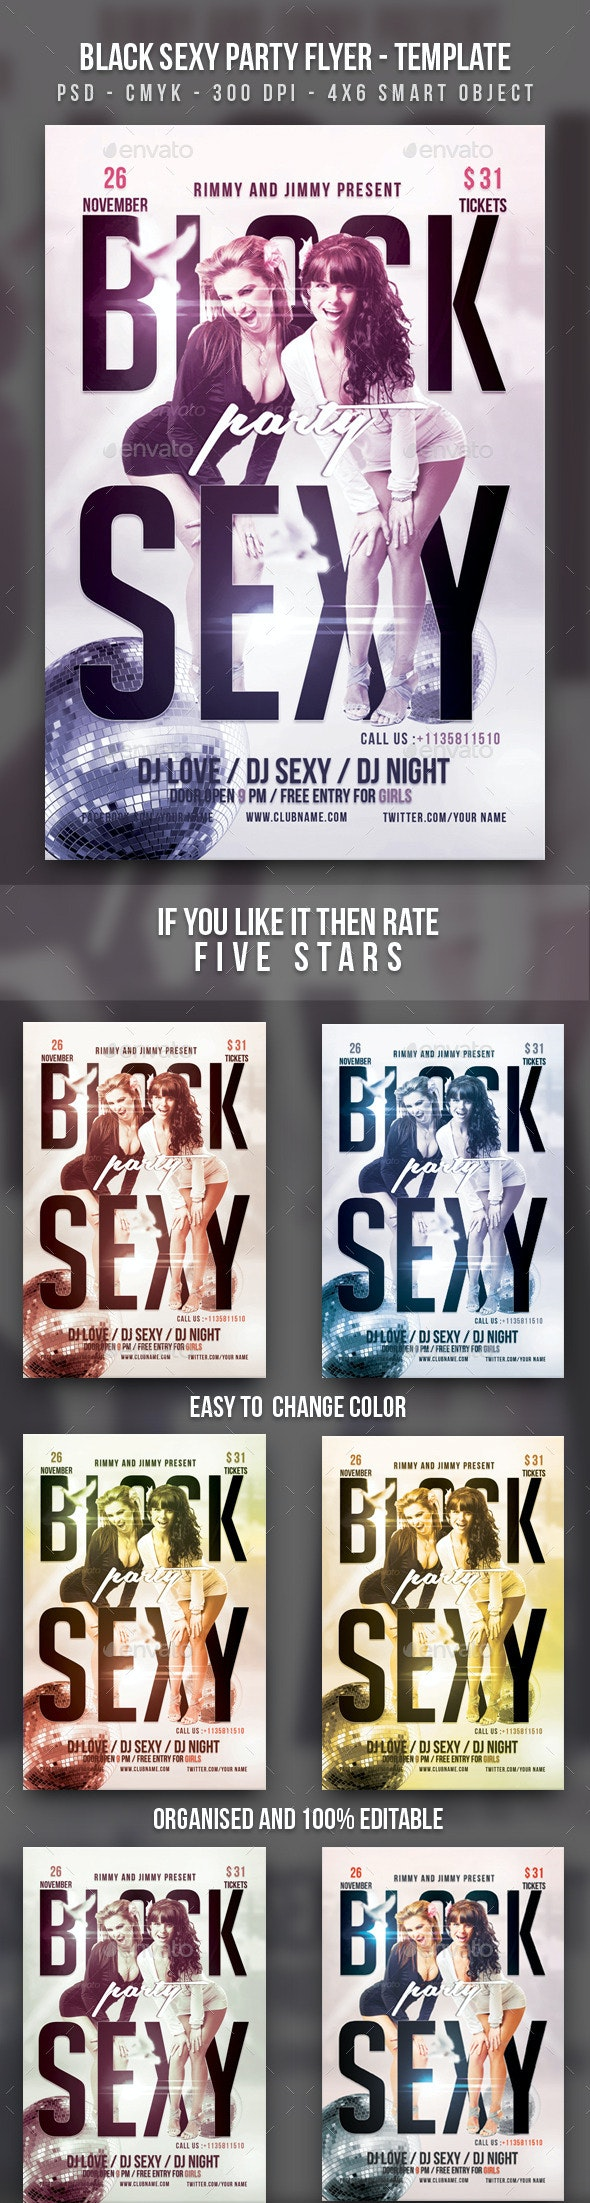 Black Sexy Party Flyer Template - Clubs & Parties Events